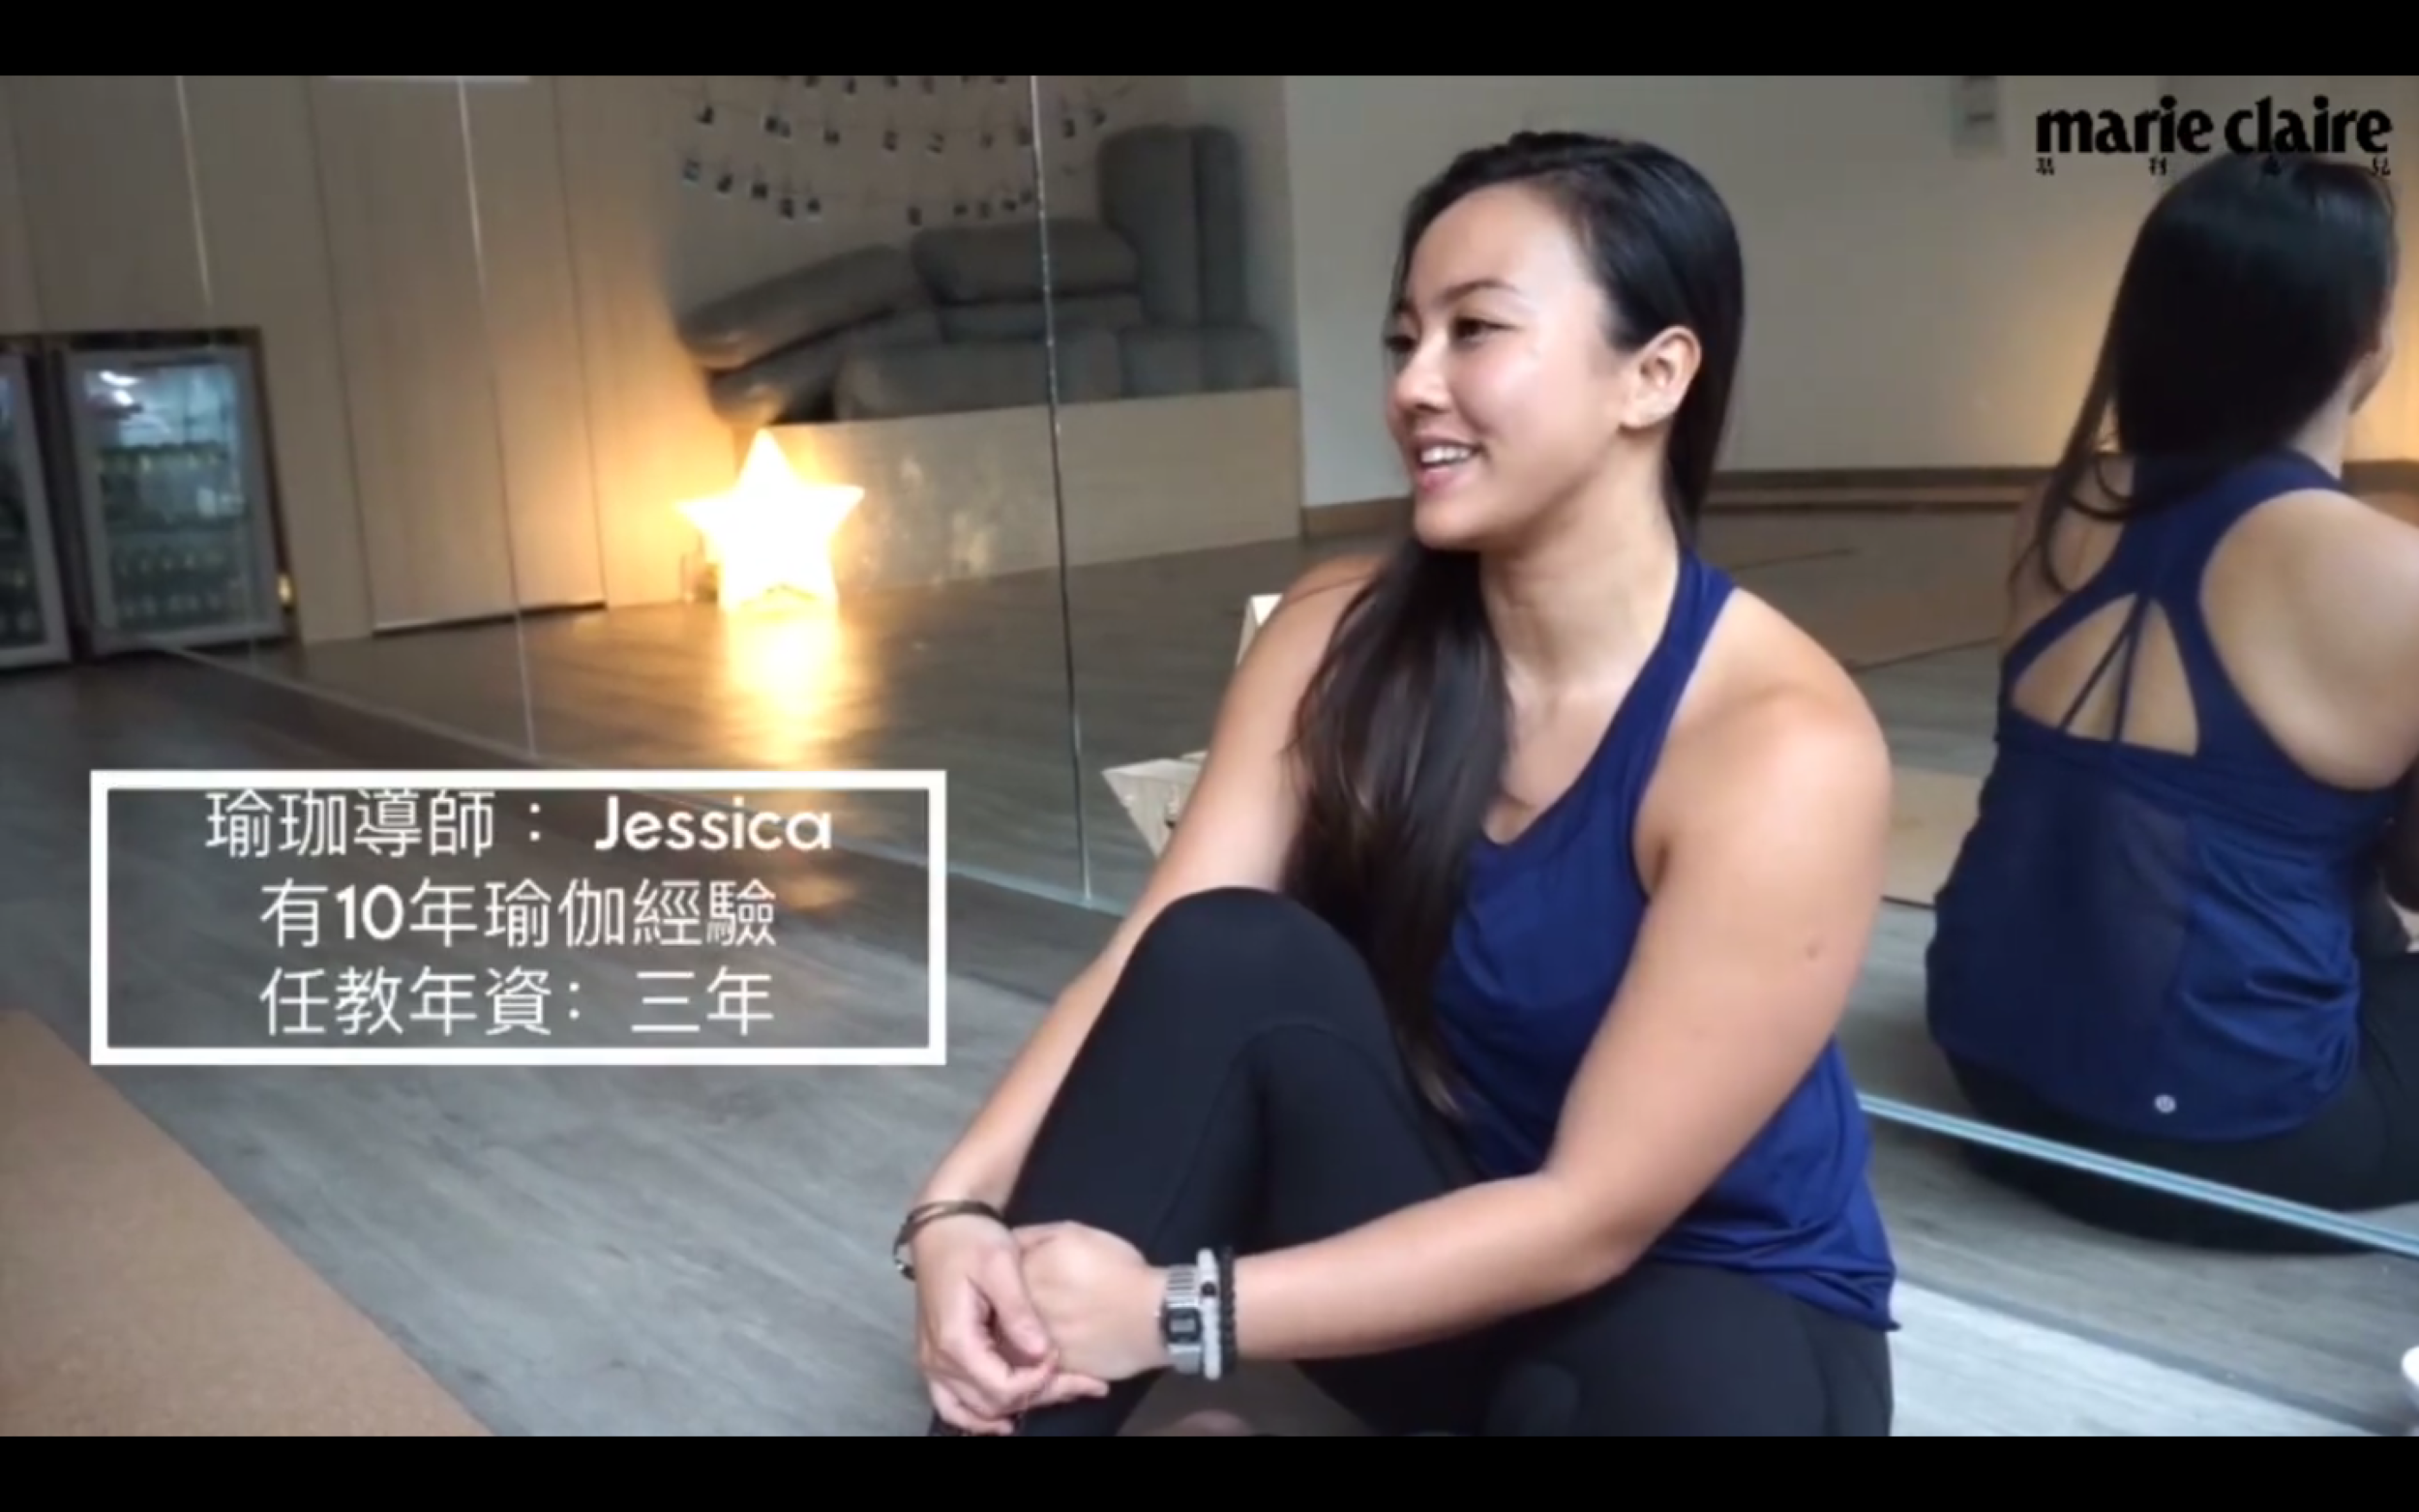 Acroyoga Interview - Marie Claire Hong Kong